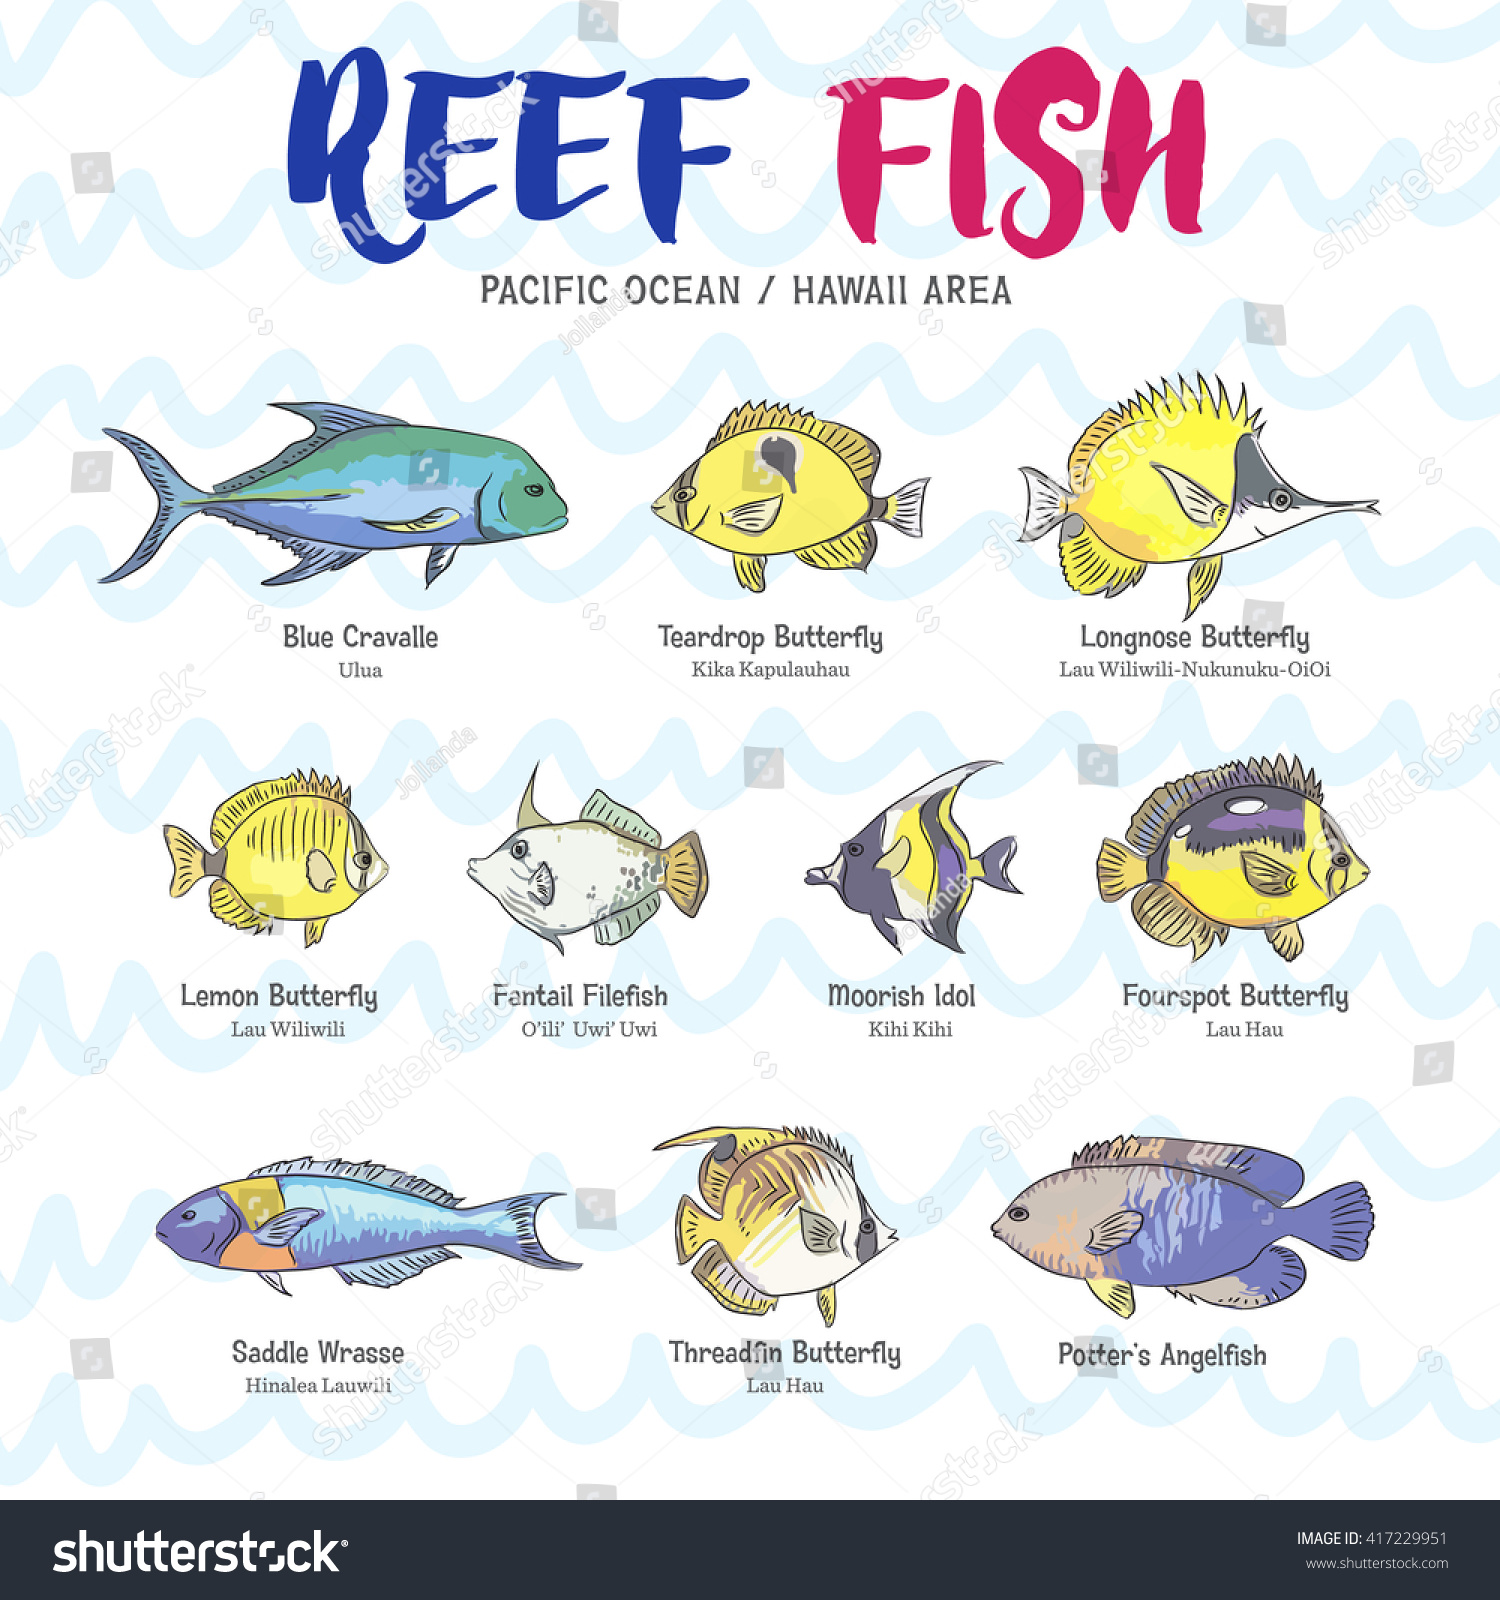 248 Names You Can Give Your Pet Fish  thesprucepetscom